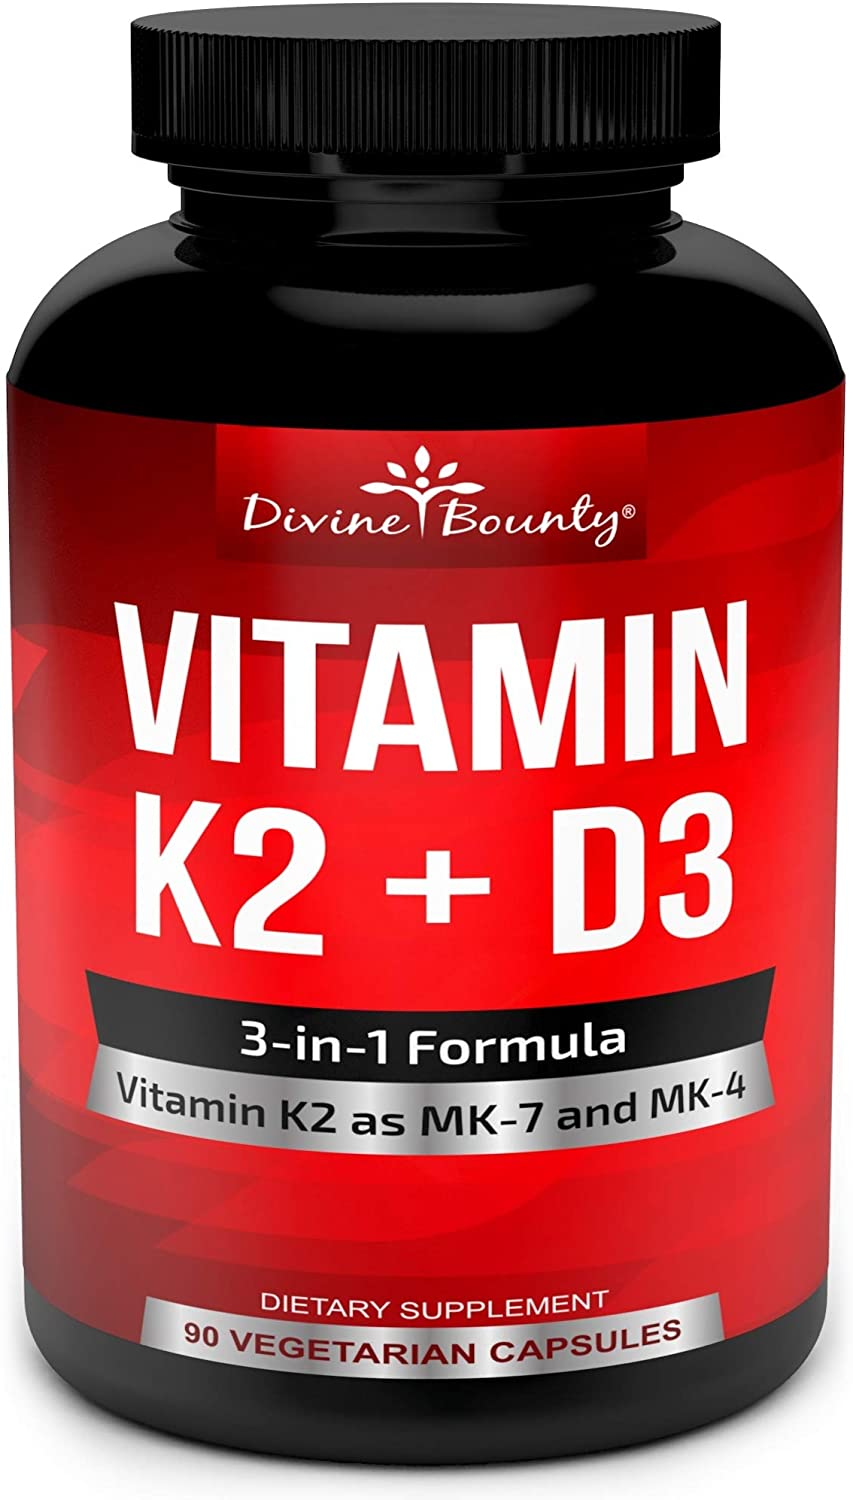 Amazon Com Vitamin K2 Mk7 Mk4 With D3 Supplement Vitamin K D As Mk 7 100mcg Mk 4 500mcg And 5000 Iu Vitamin D3 3 In 1 Formula Bone And Heart Support 90